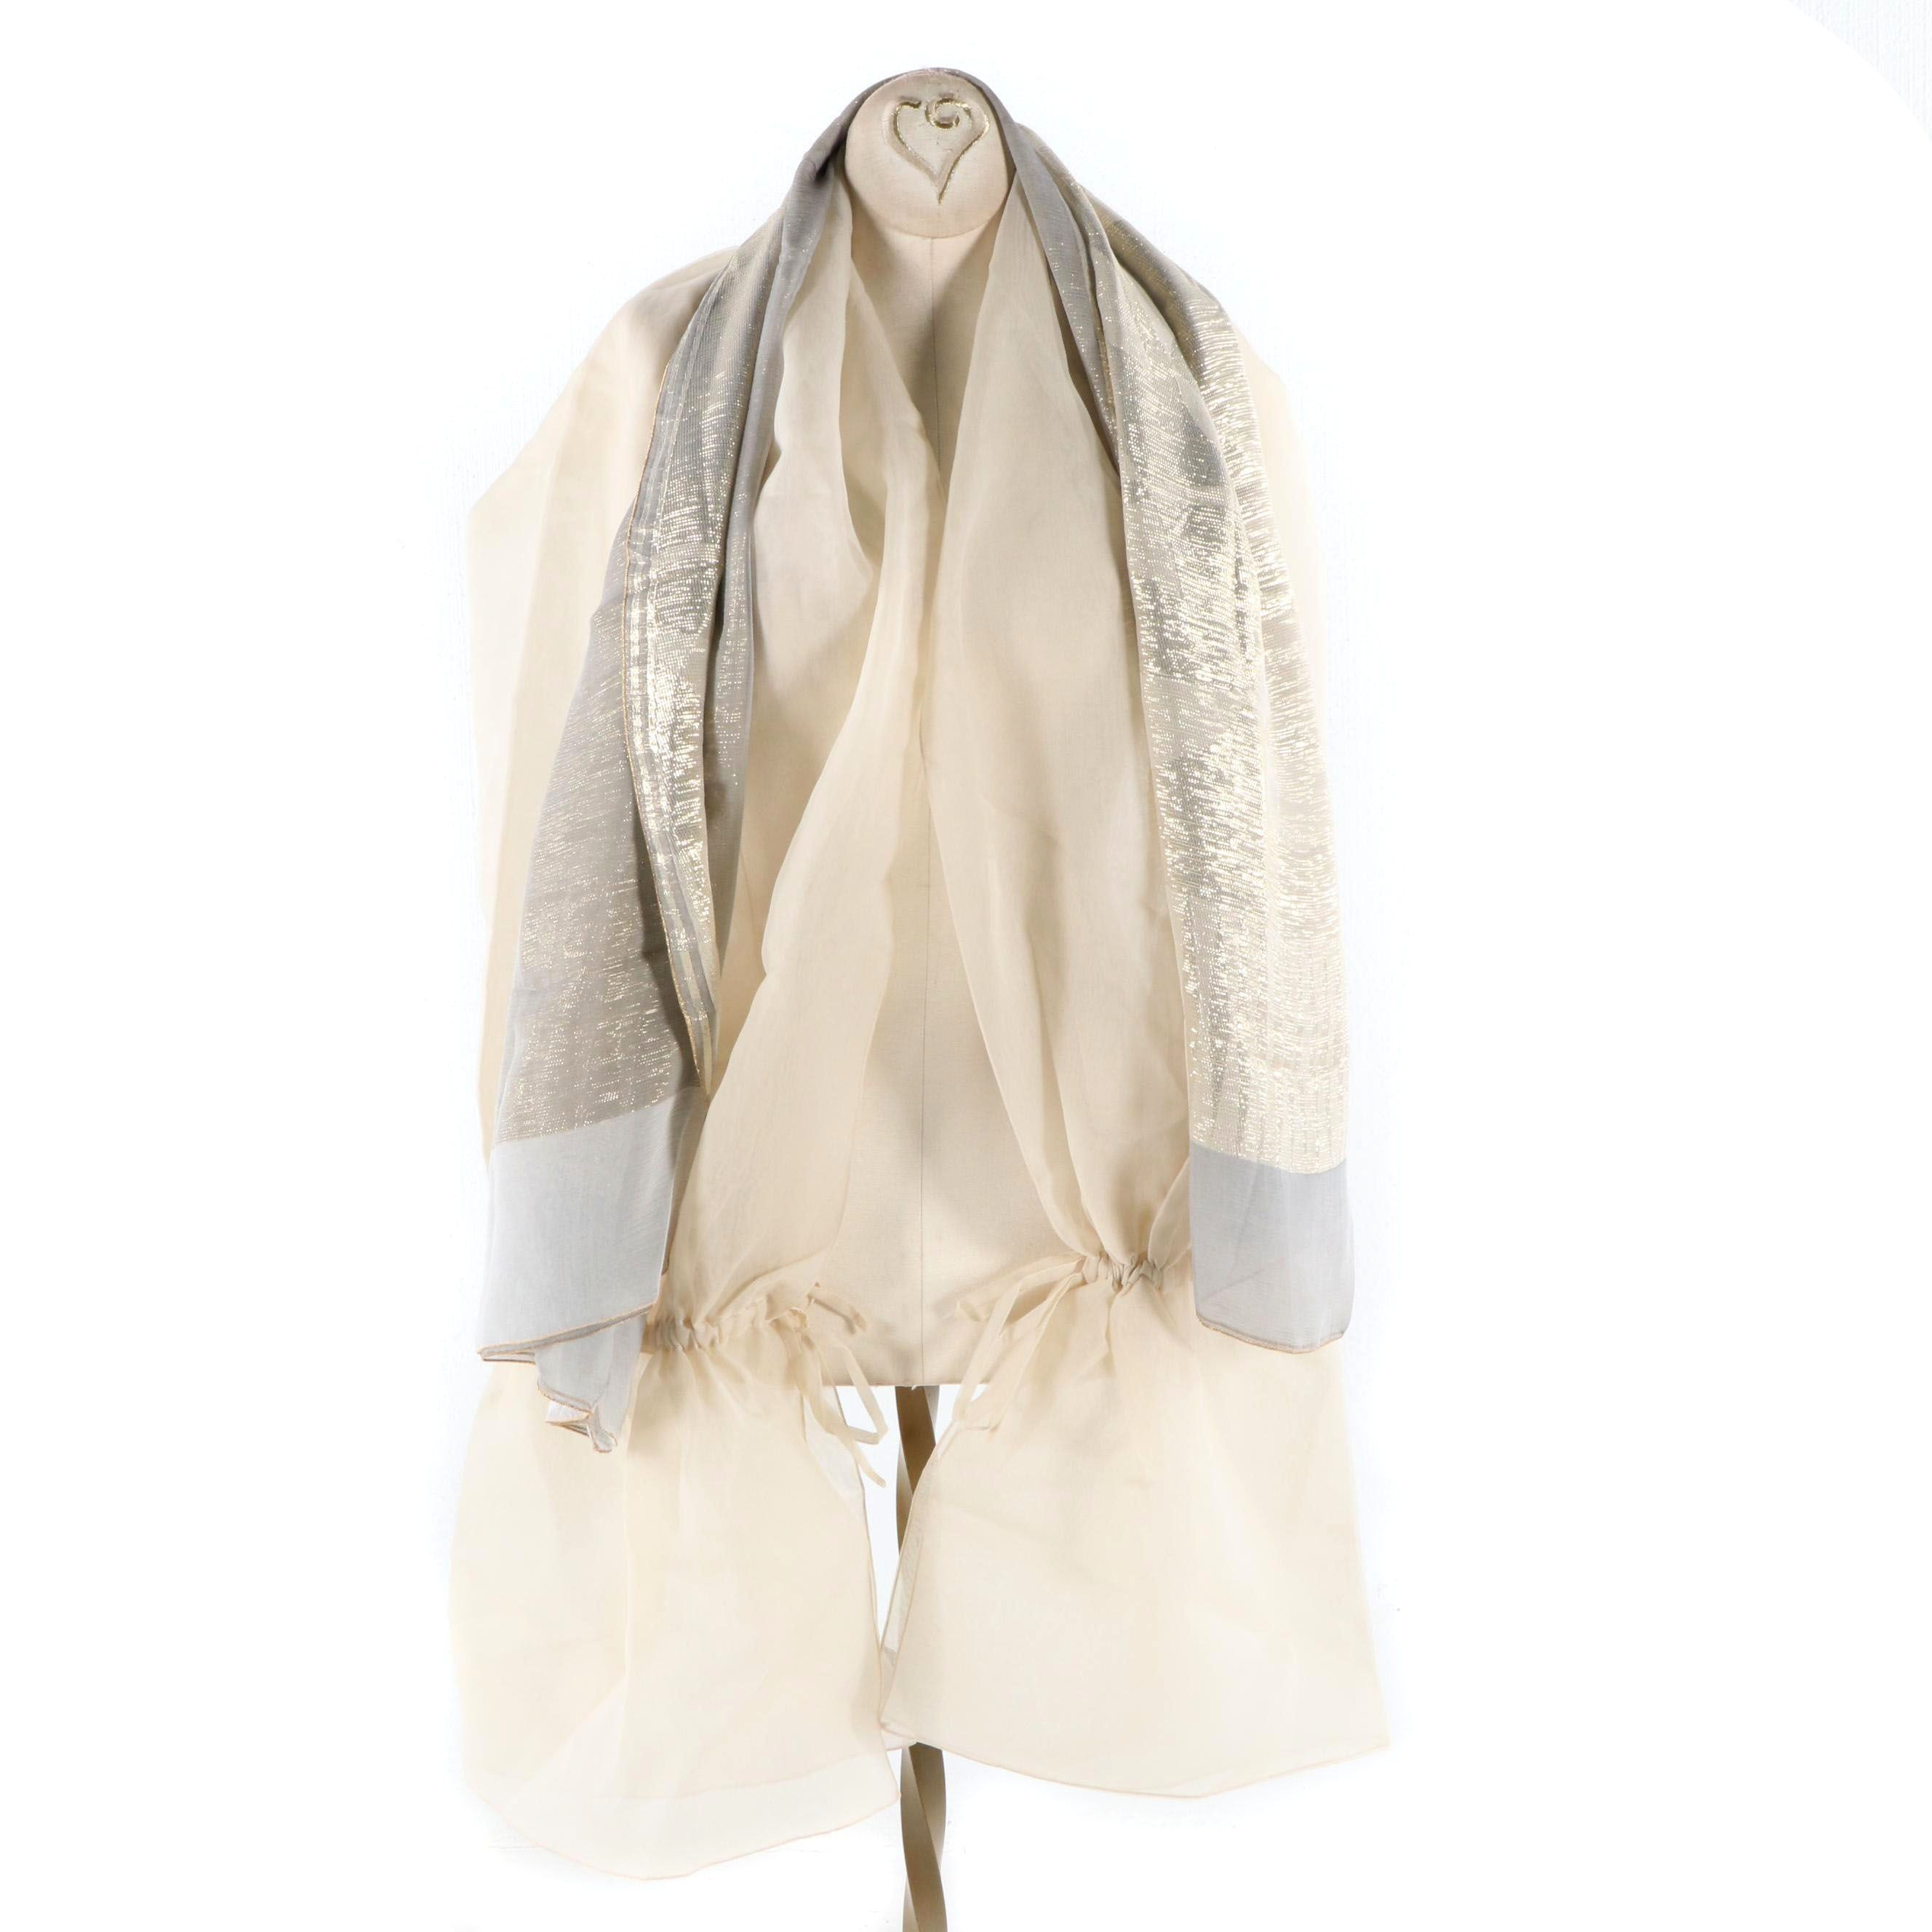 Women's Giorgio Armani Silk Scarf and Wrap